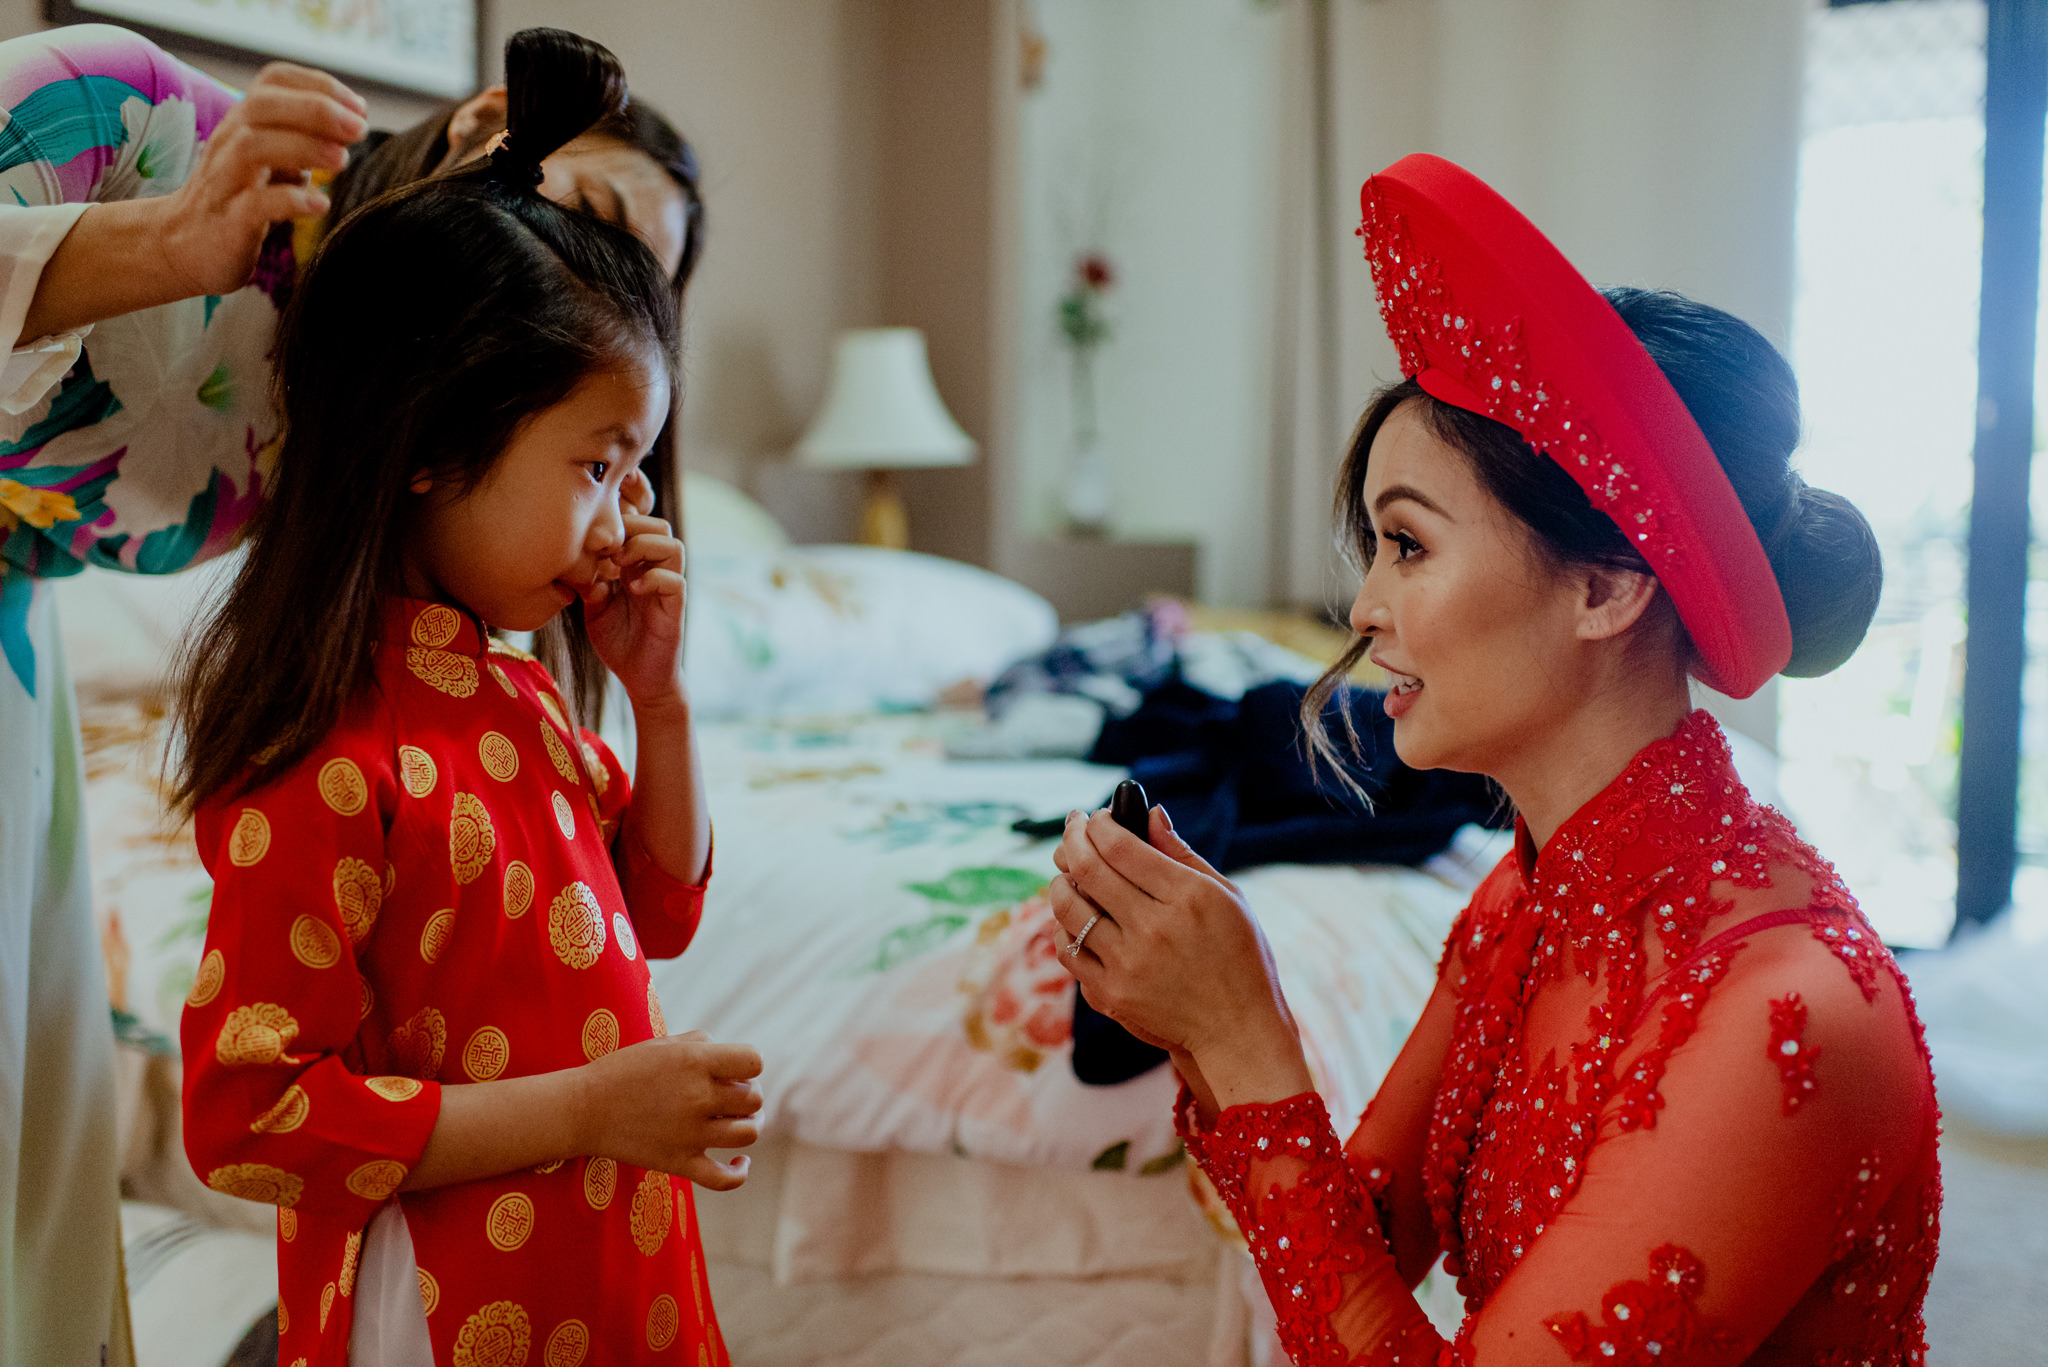 Asian lady in traditional Vietnamese dress helps young girl get dressed